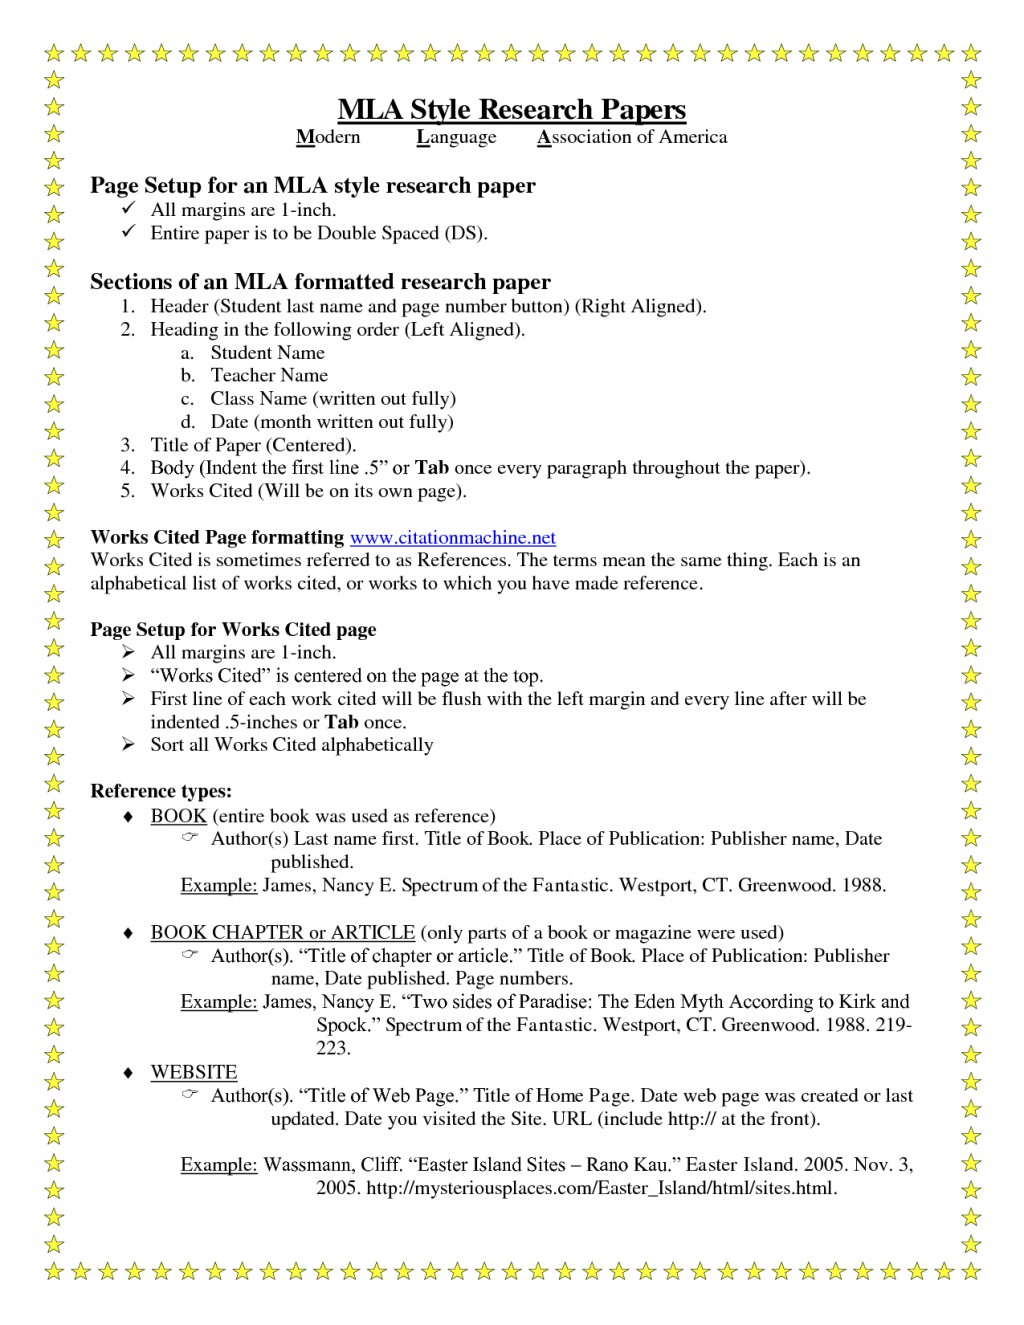 006 Order Of Research Paper Headings In Breathtaking Reviews A Mla Authors Large